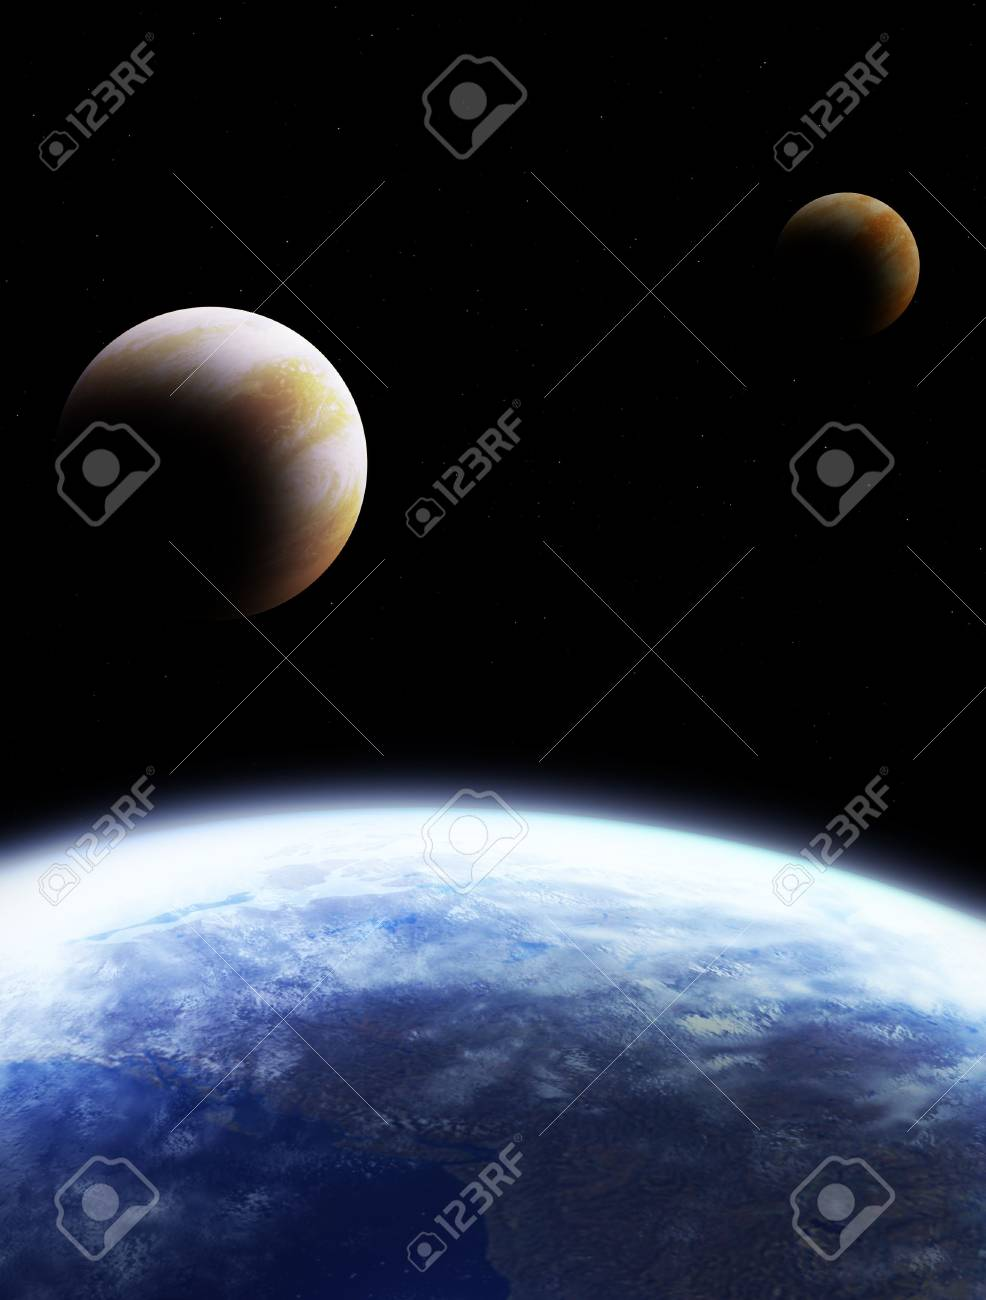 Kind of the Earth from space, on a black background Stock Photo - 4763714